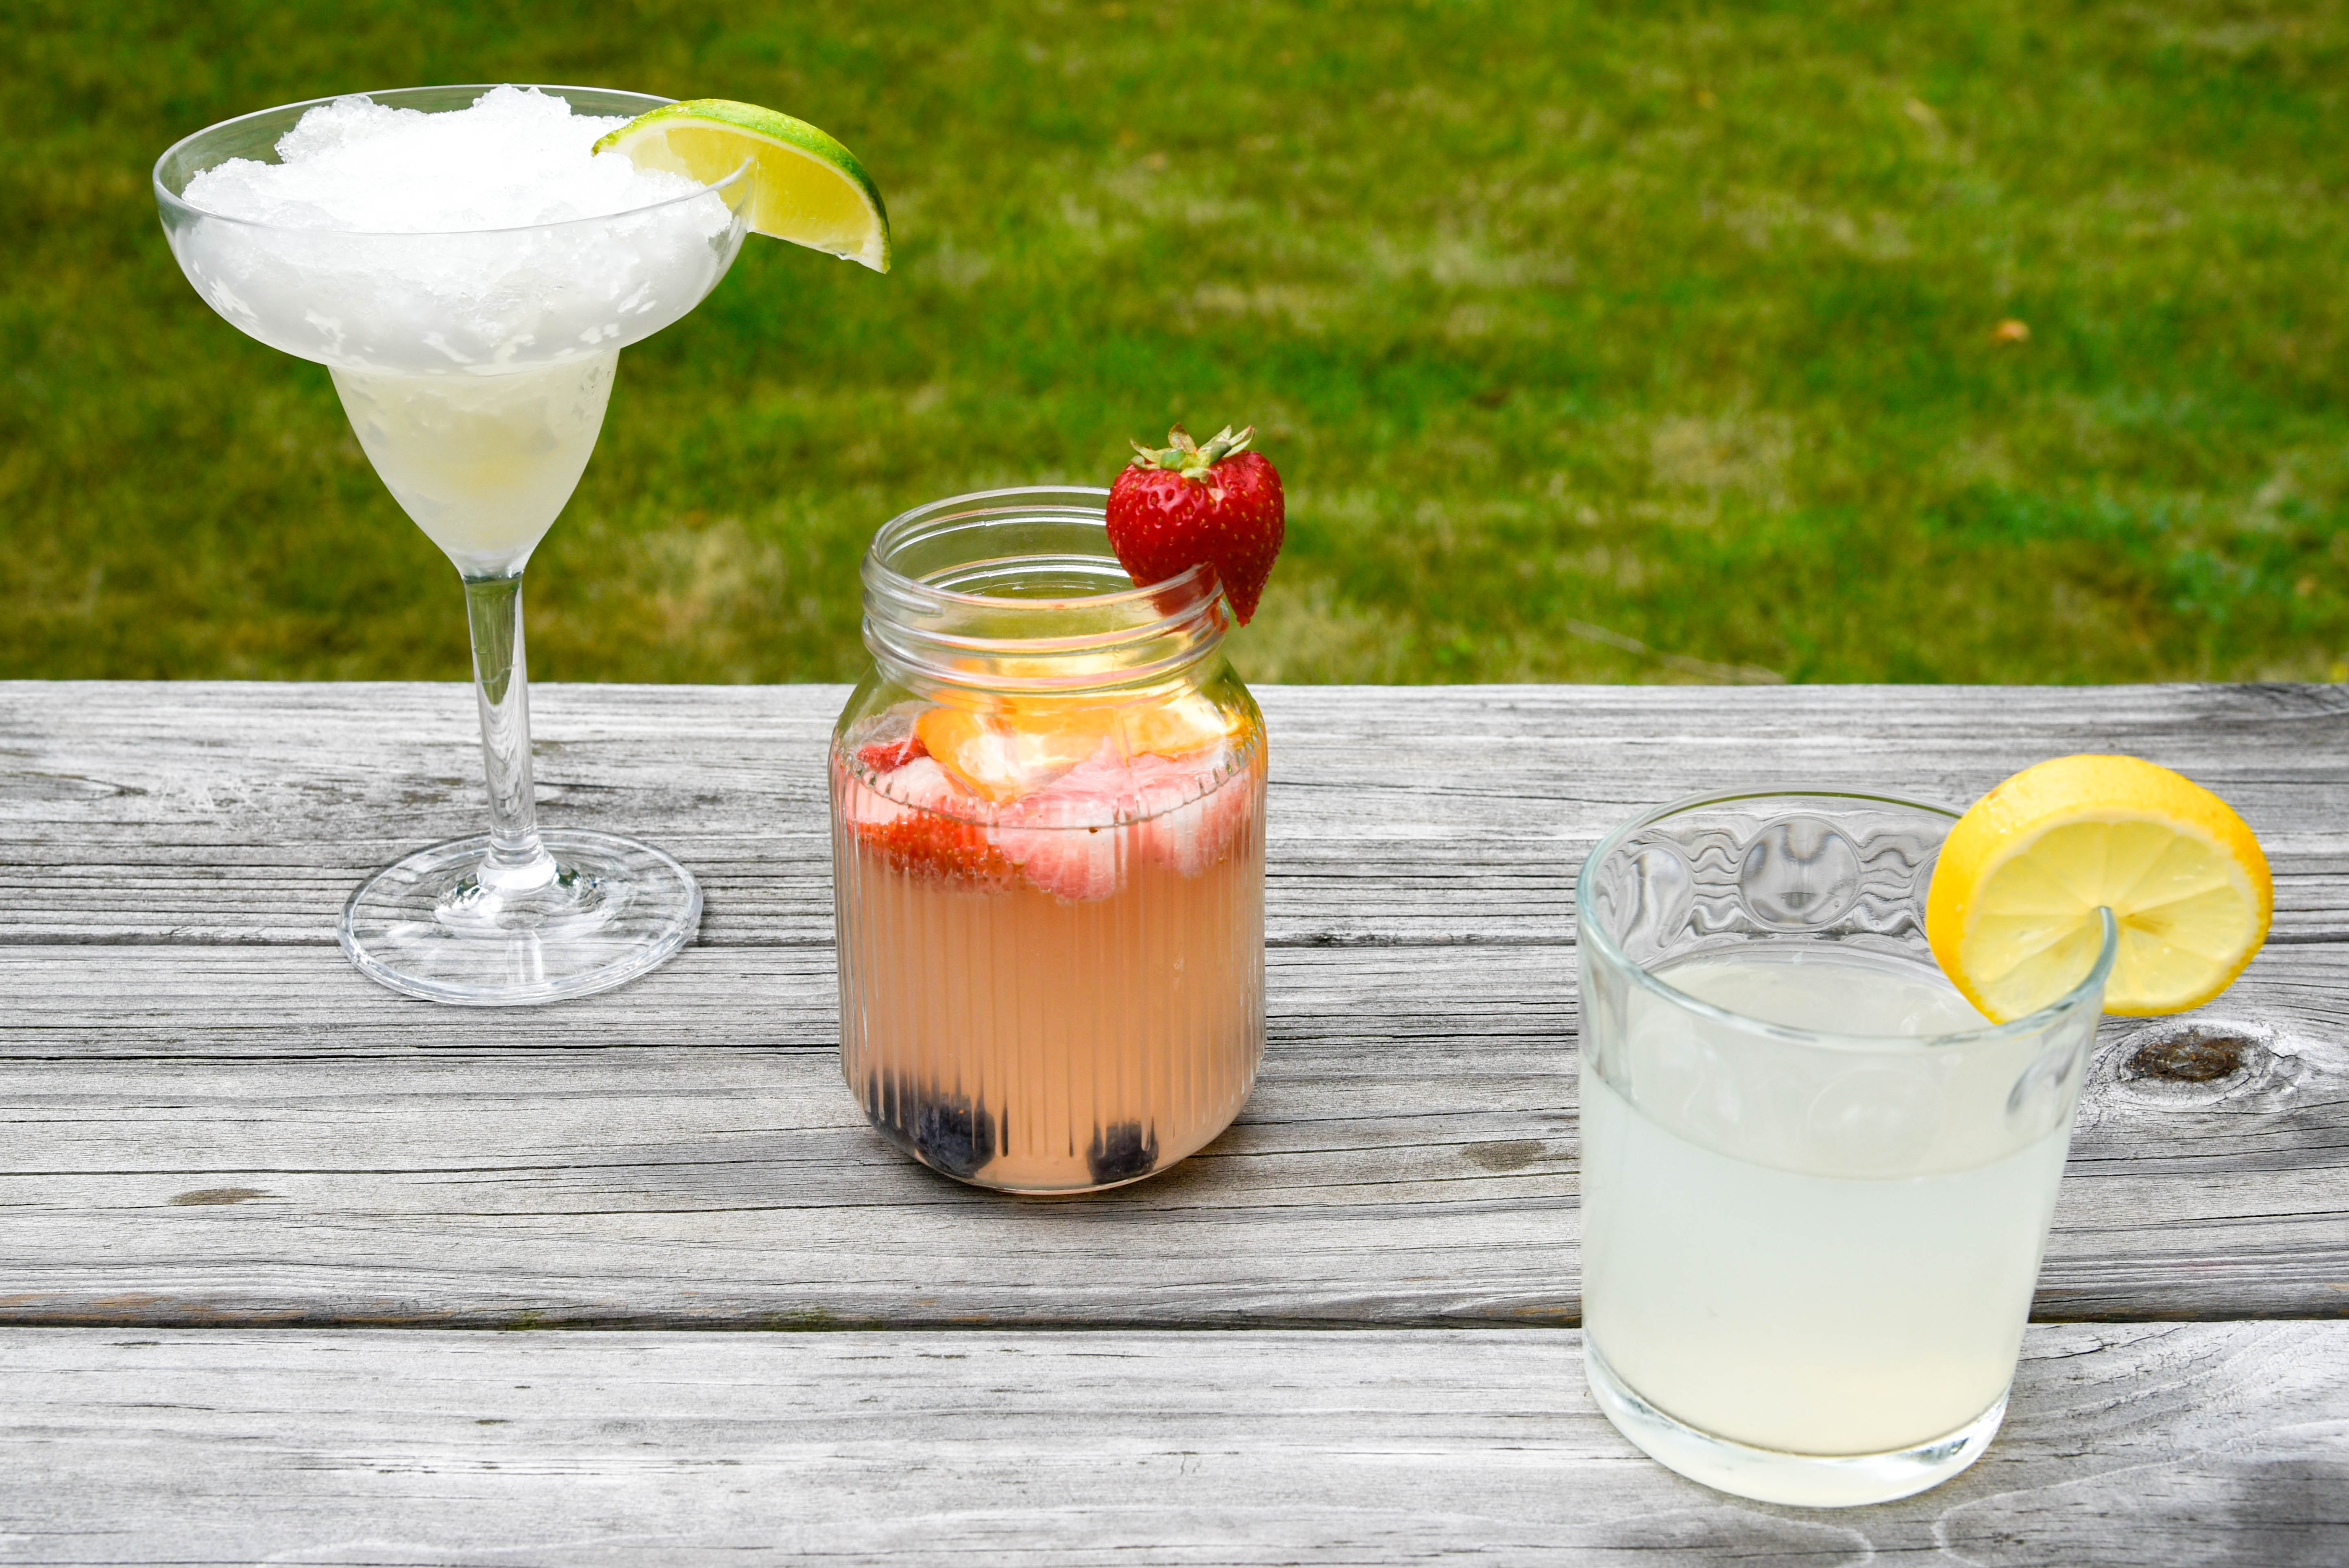 Camping Cocktails —three cocktails in diagonal pattern, each with fruit.